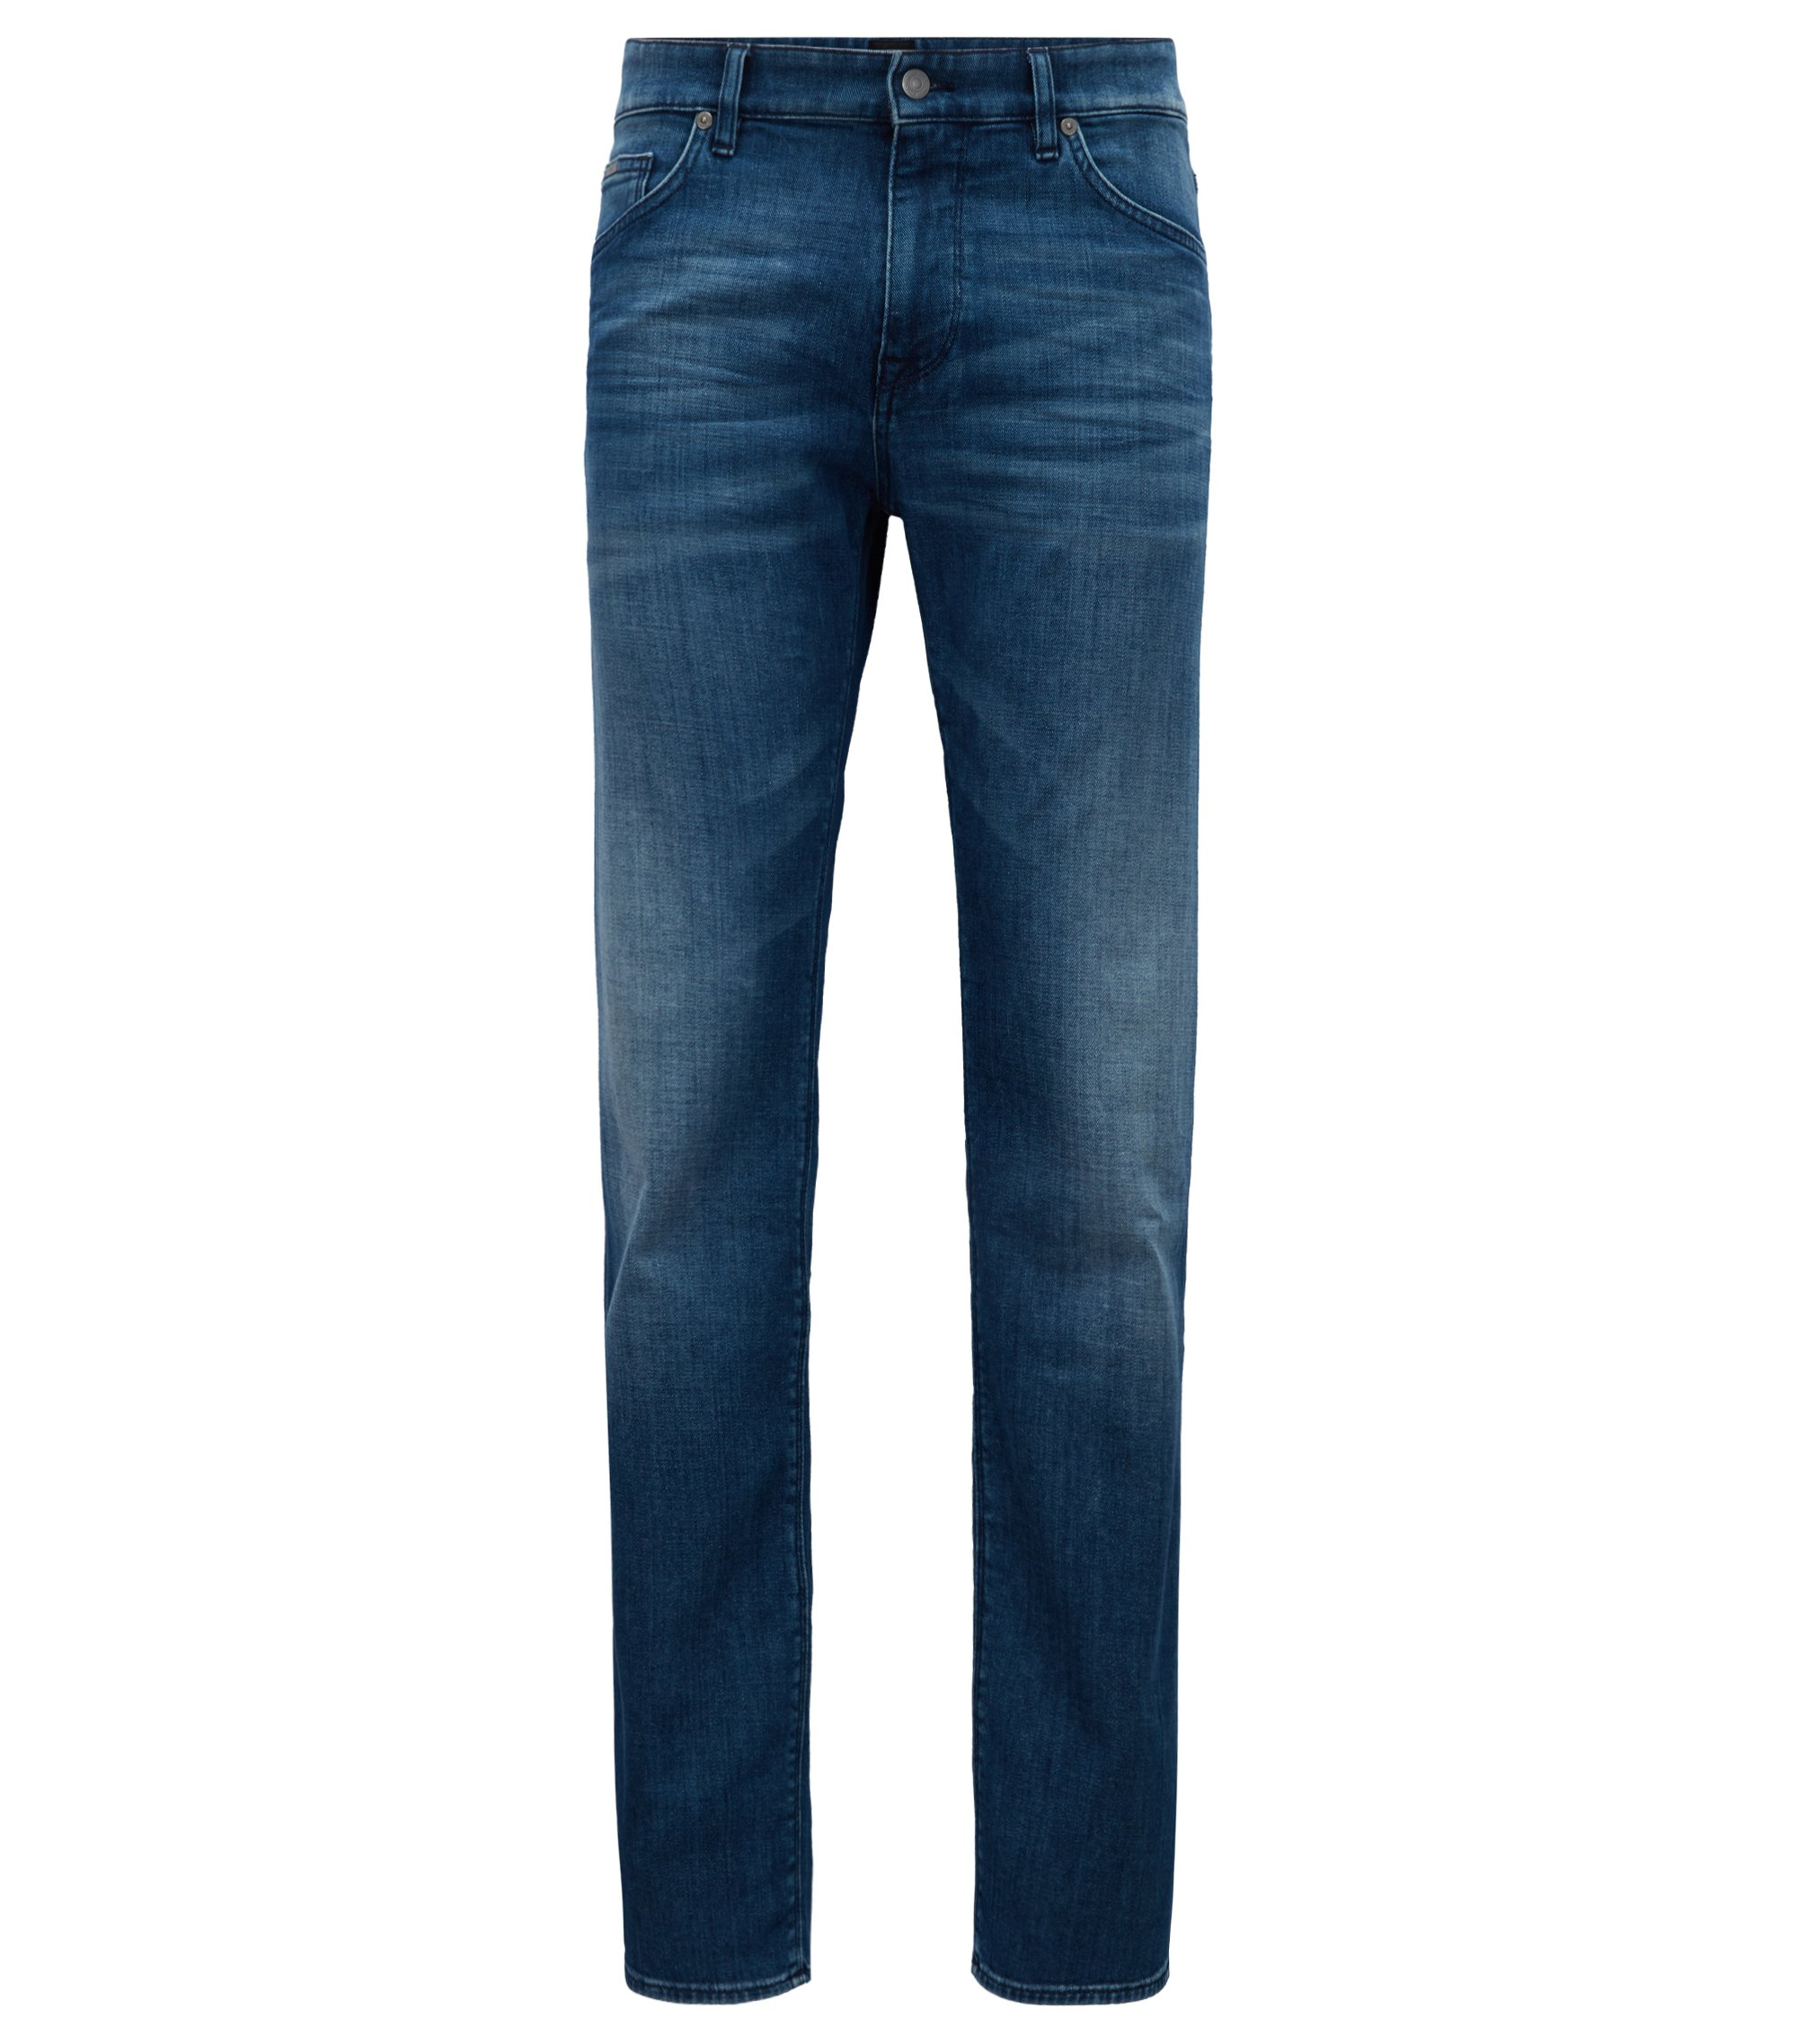 Regular-Fit Jeans aus italienischem Stretch-Denim, Blau